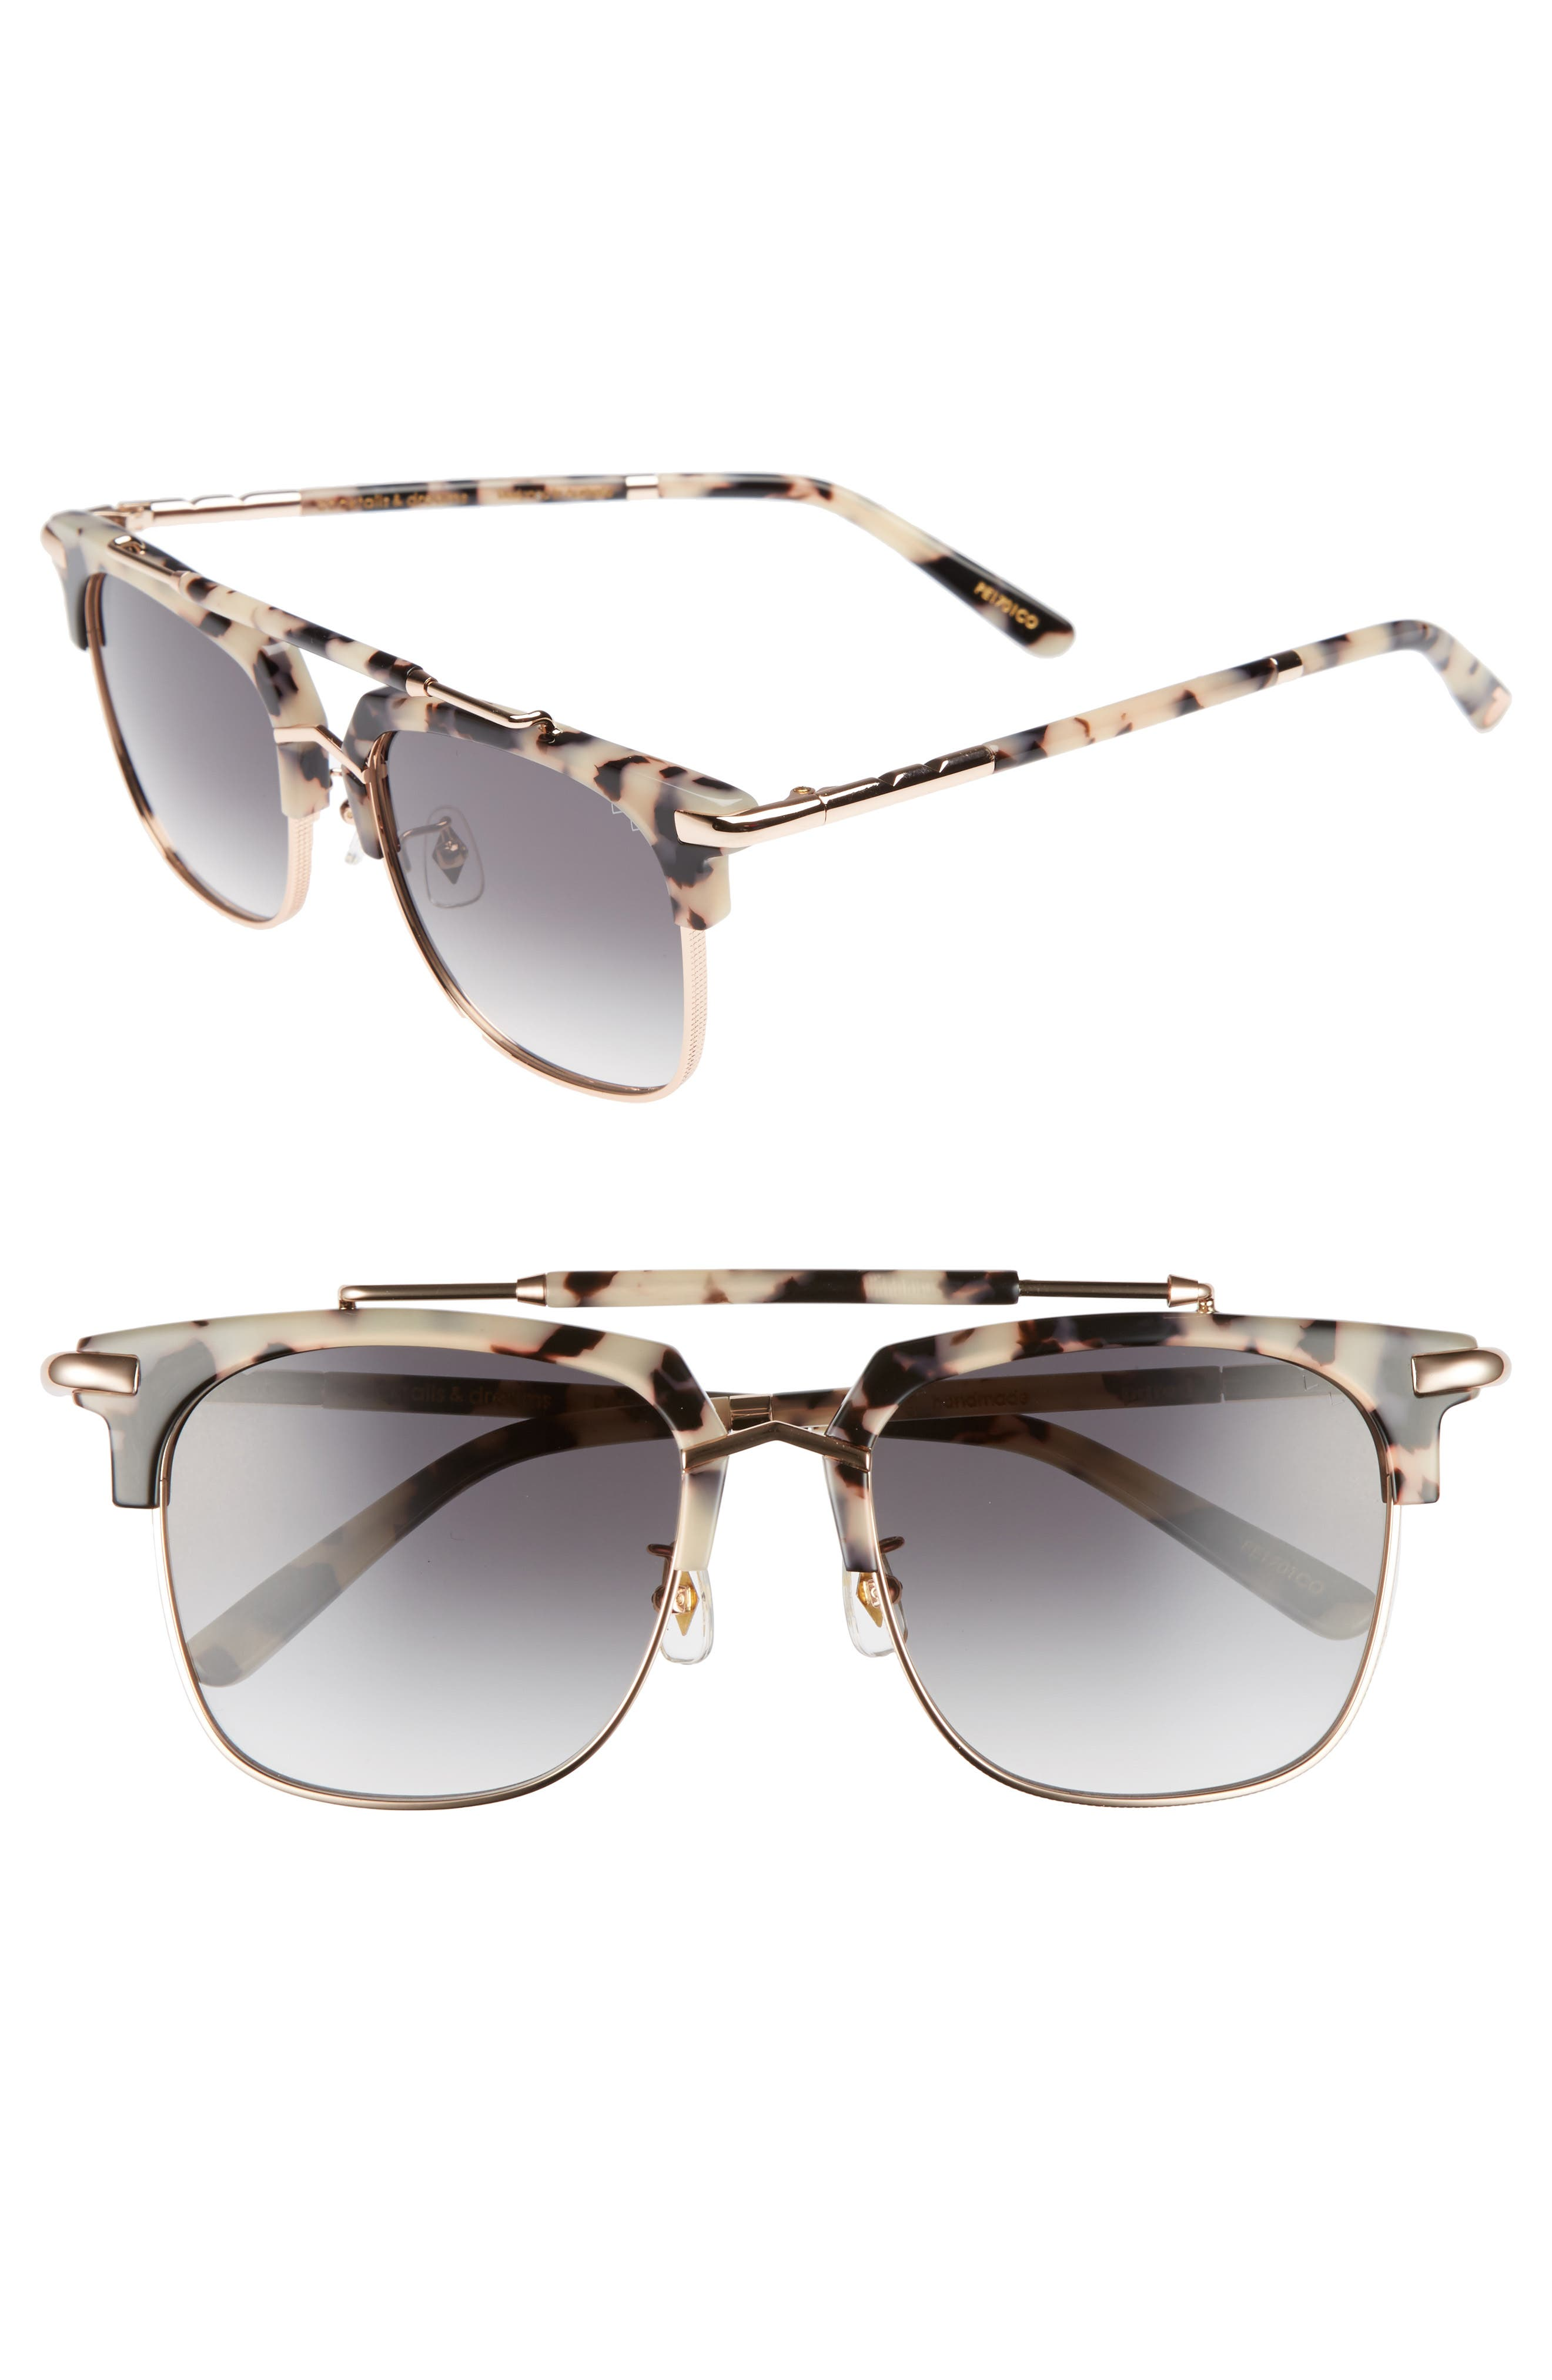 Cocktails & Dreams 53mm Sunglasses,                         Main,                         color, COOKIES/ CREAM/ ROSE GOLD GREY